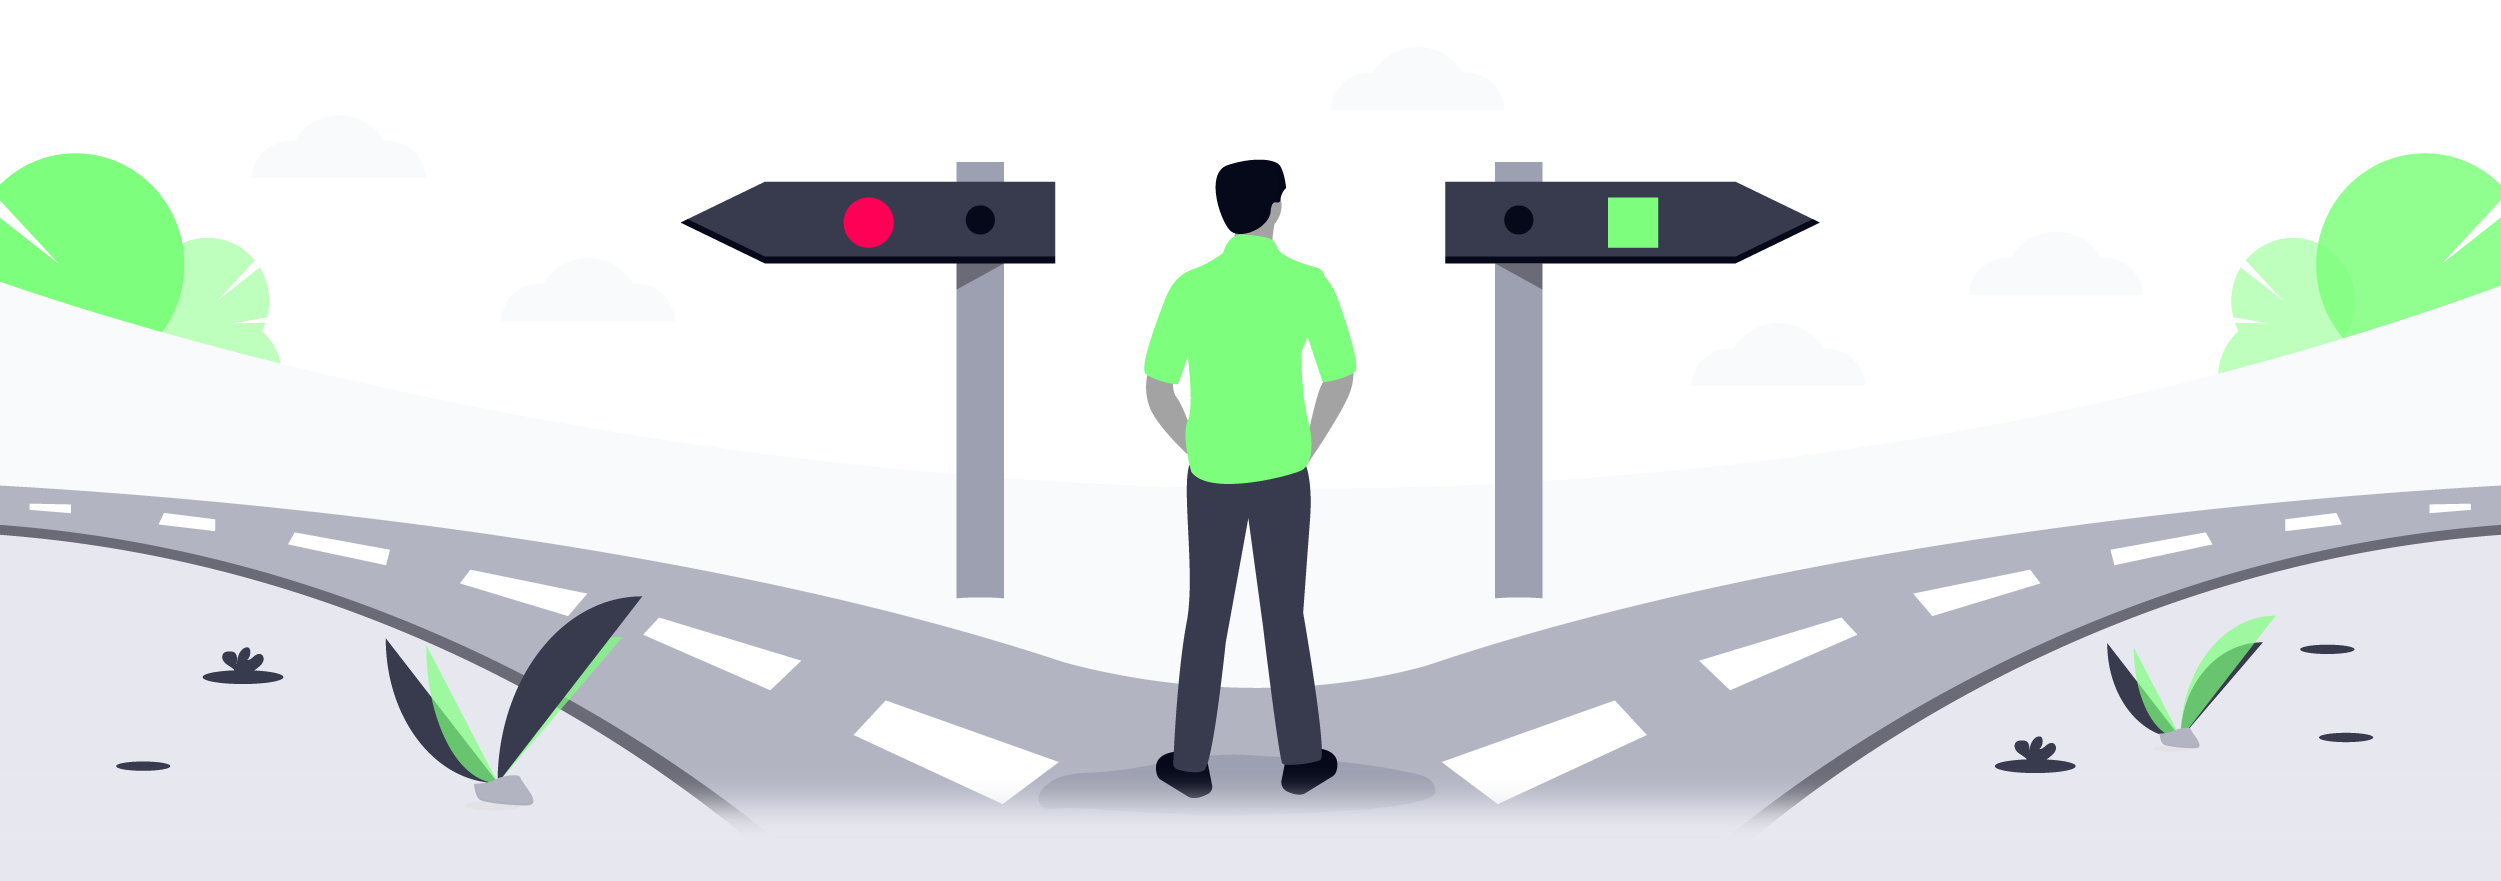 Growth Strategies 2019: Choosing the Right Path for Your Business